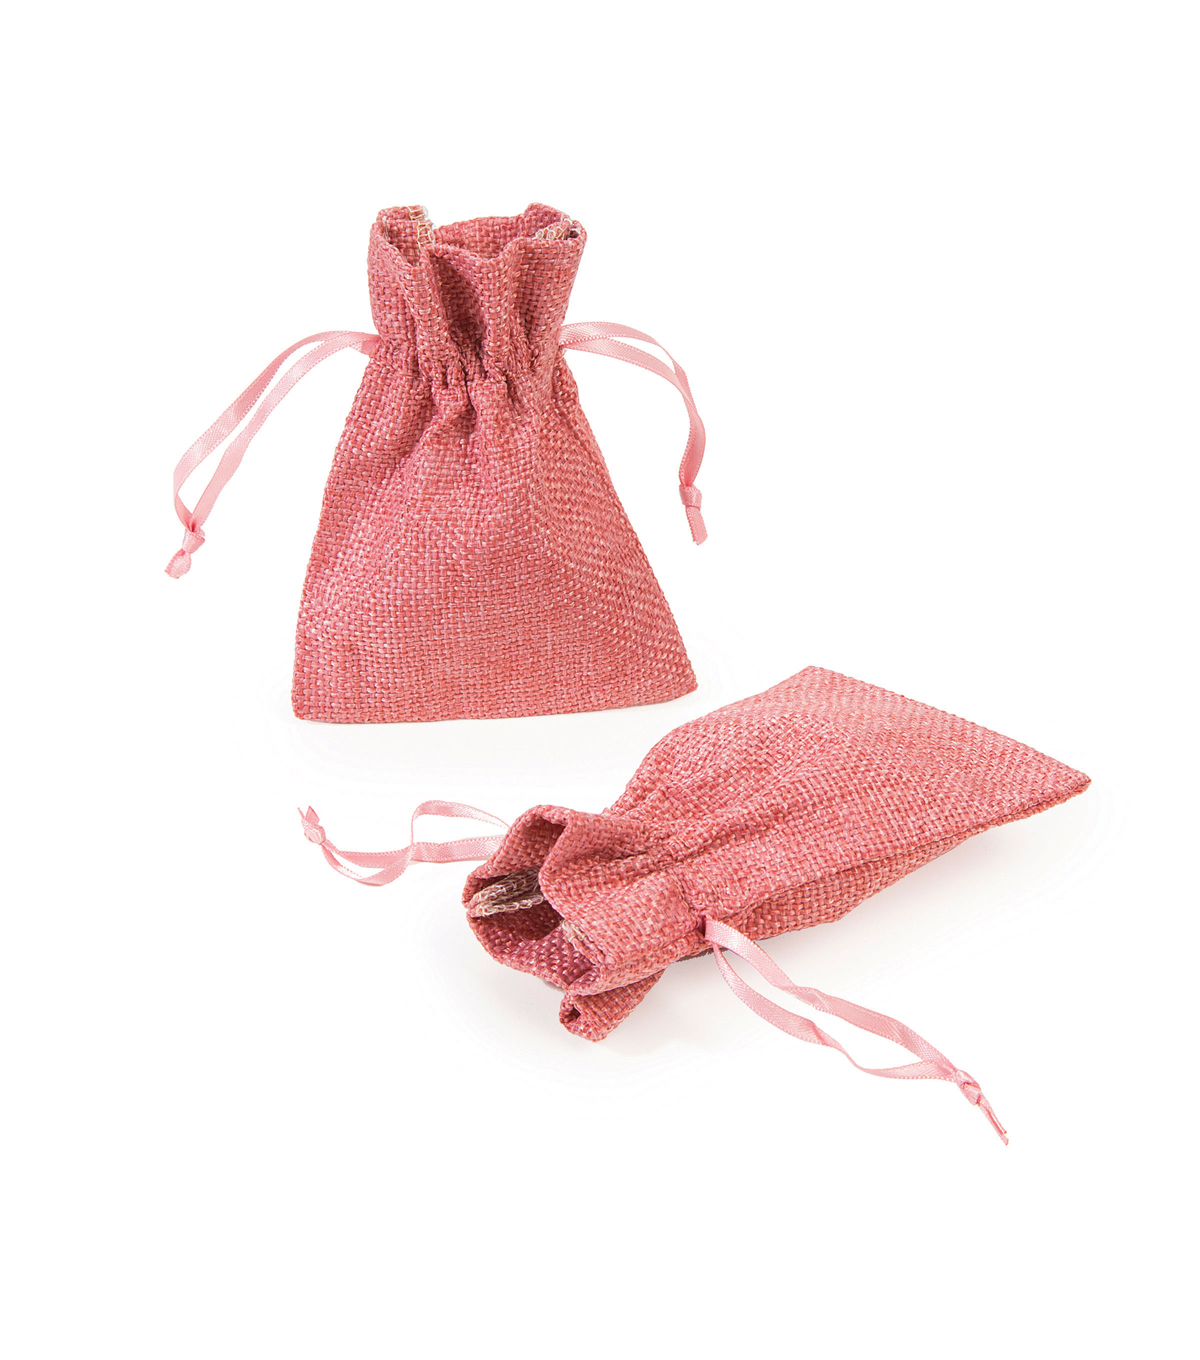 Burlap Drawstring Bags-Light Pink 2pk